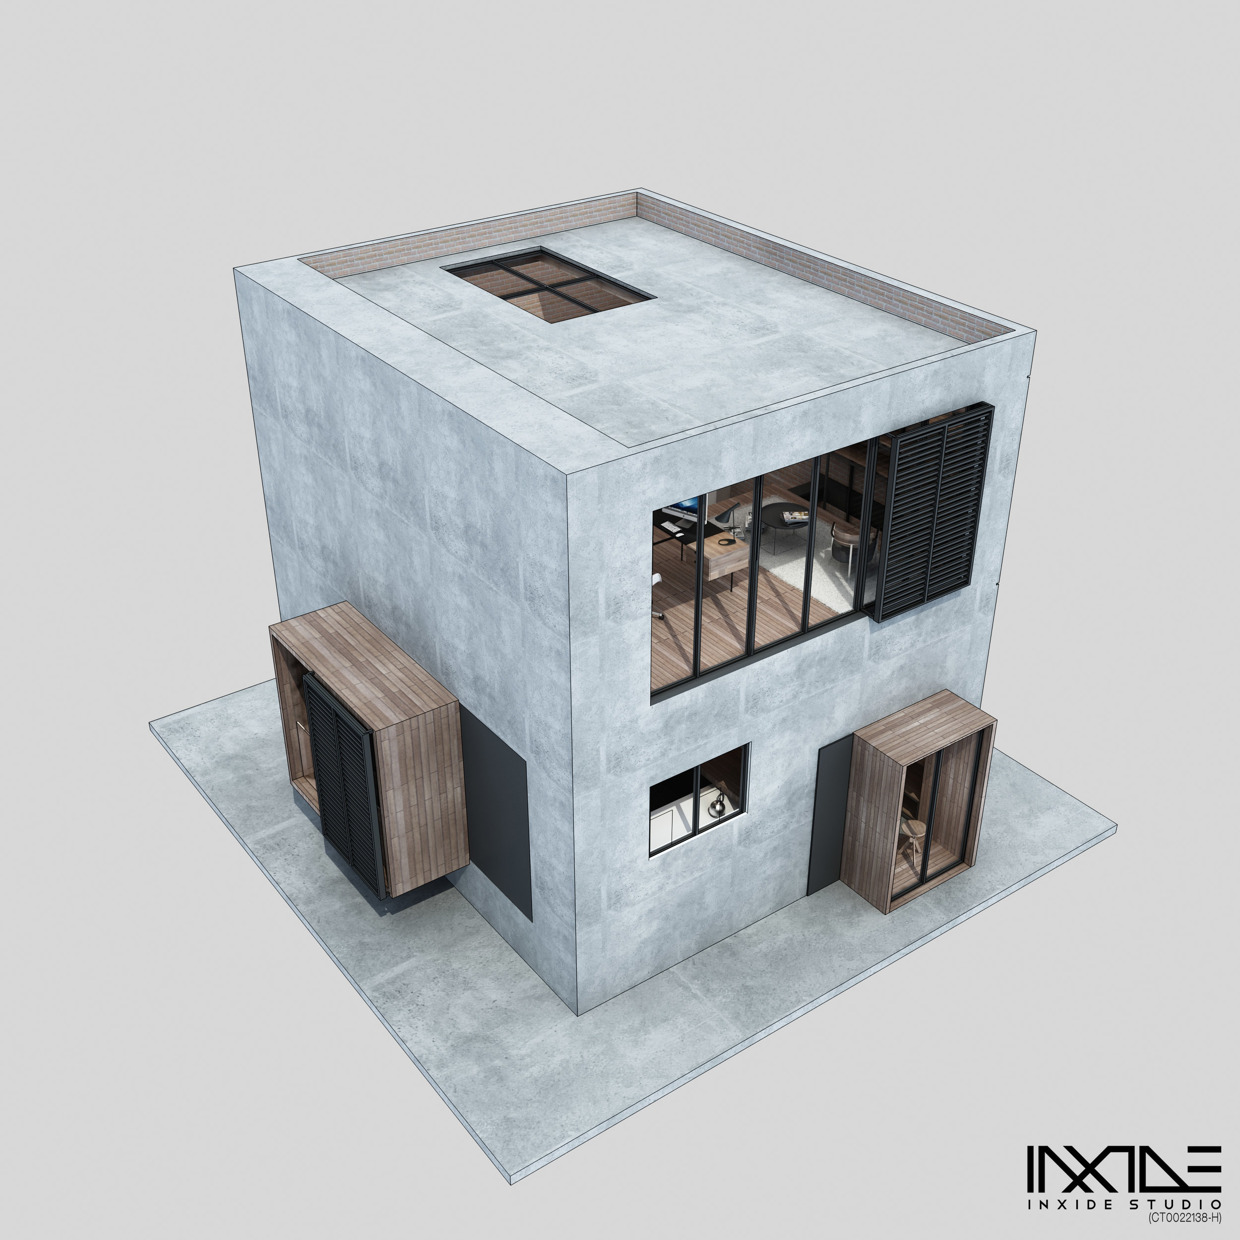 Compact House Made from Affordable Materials